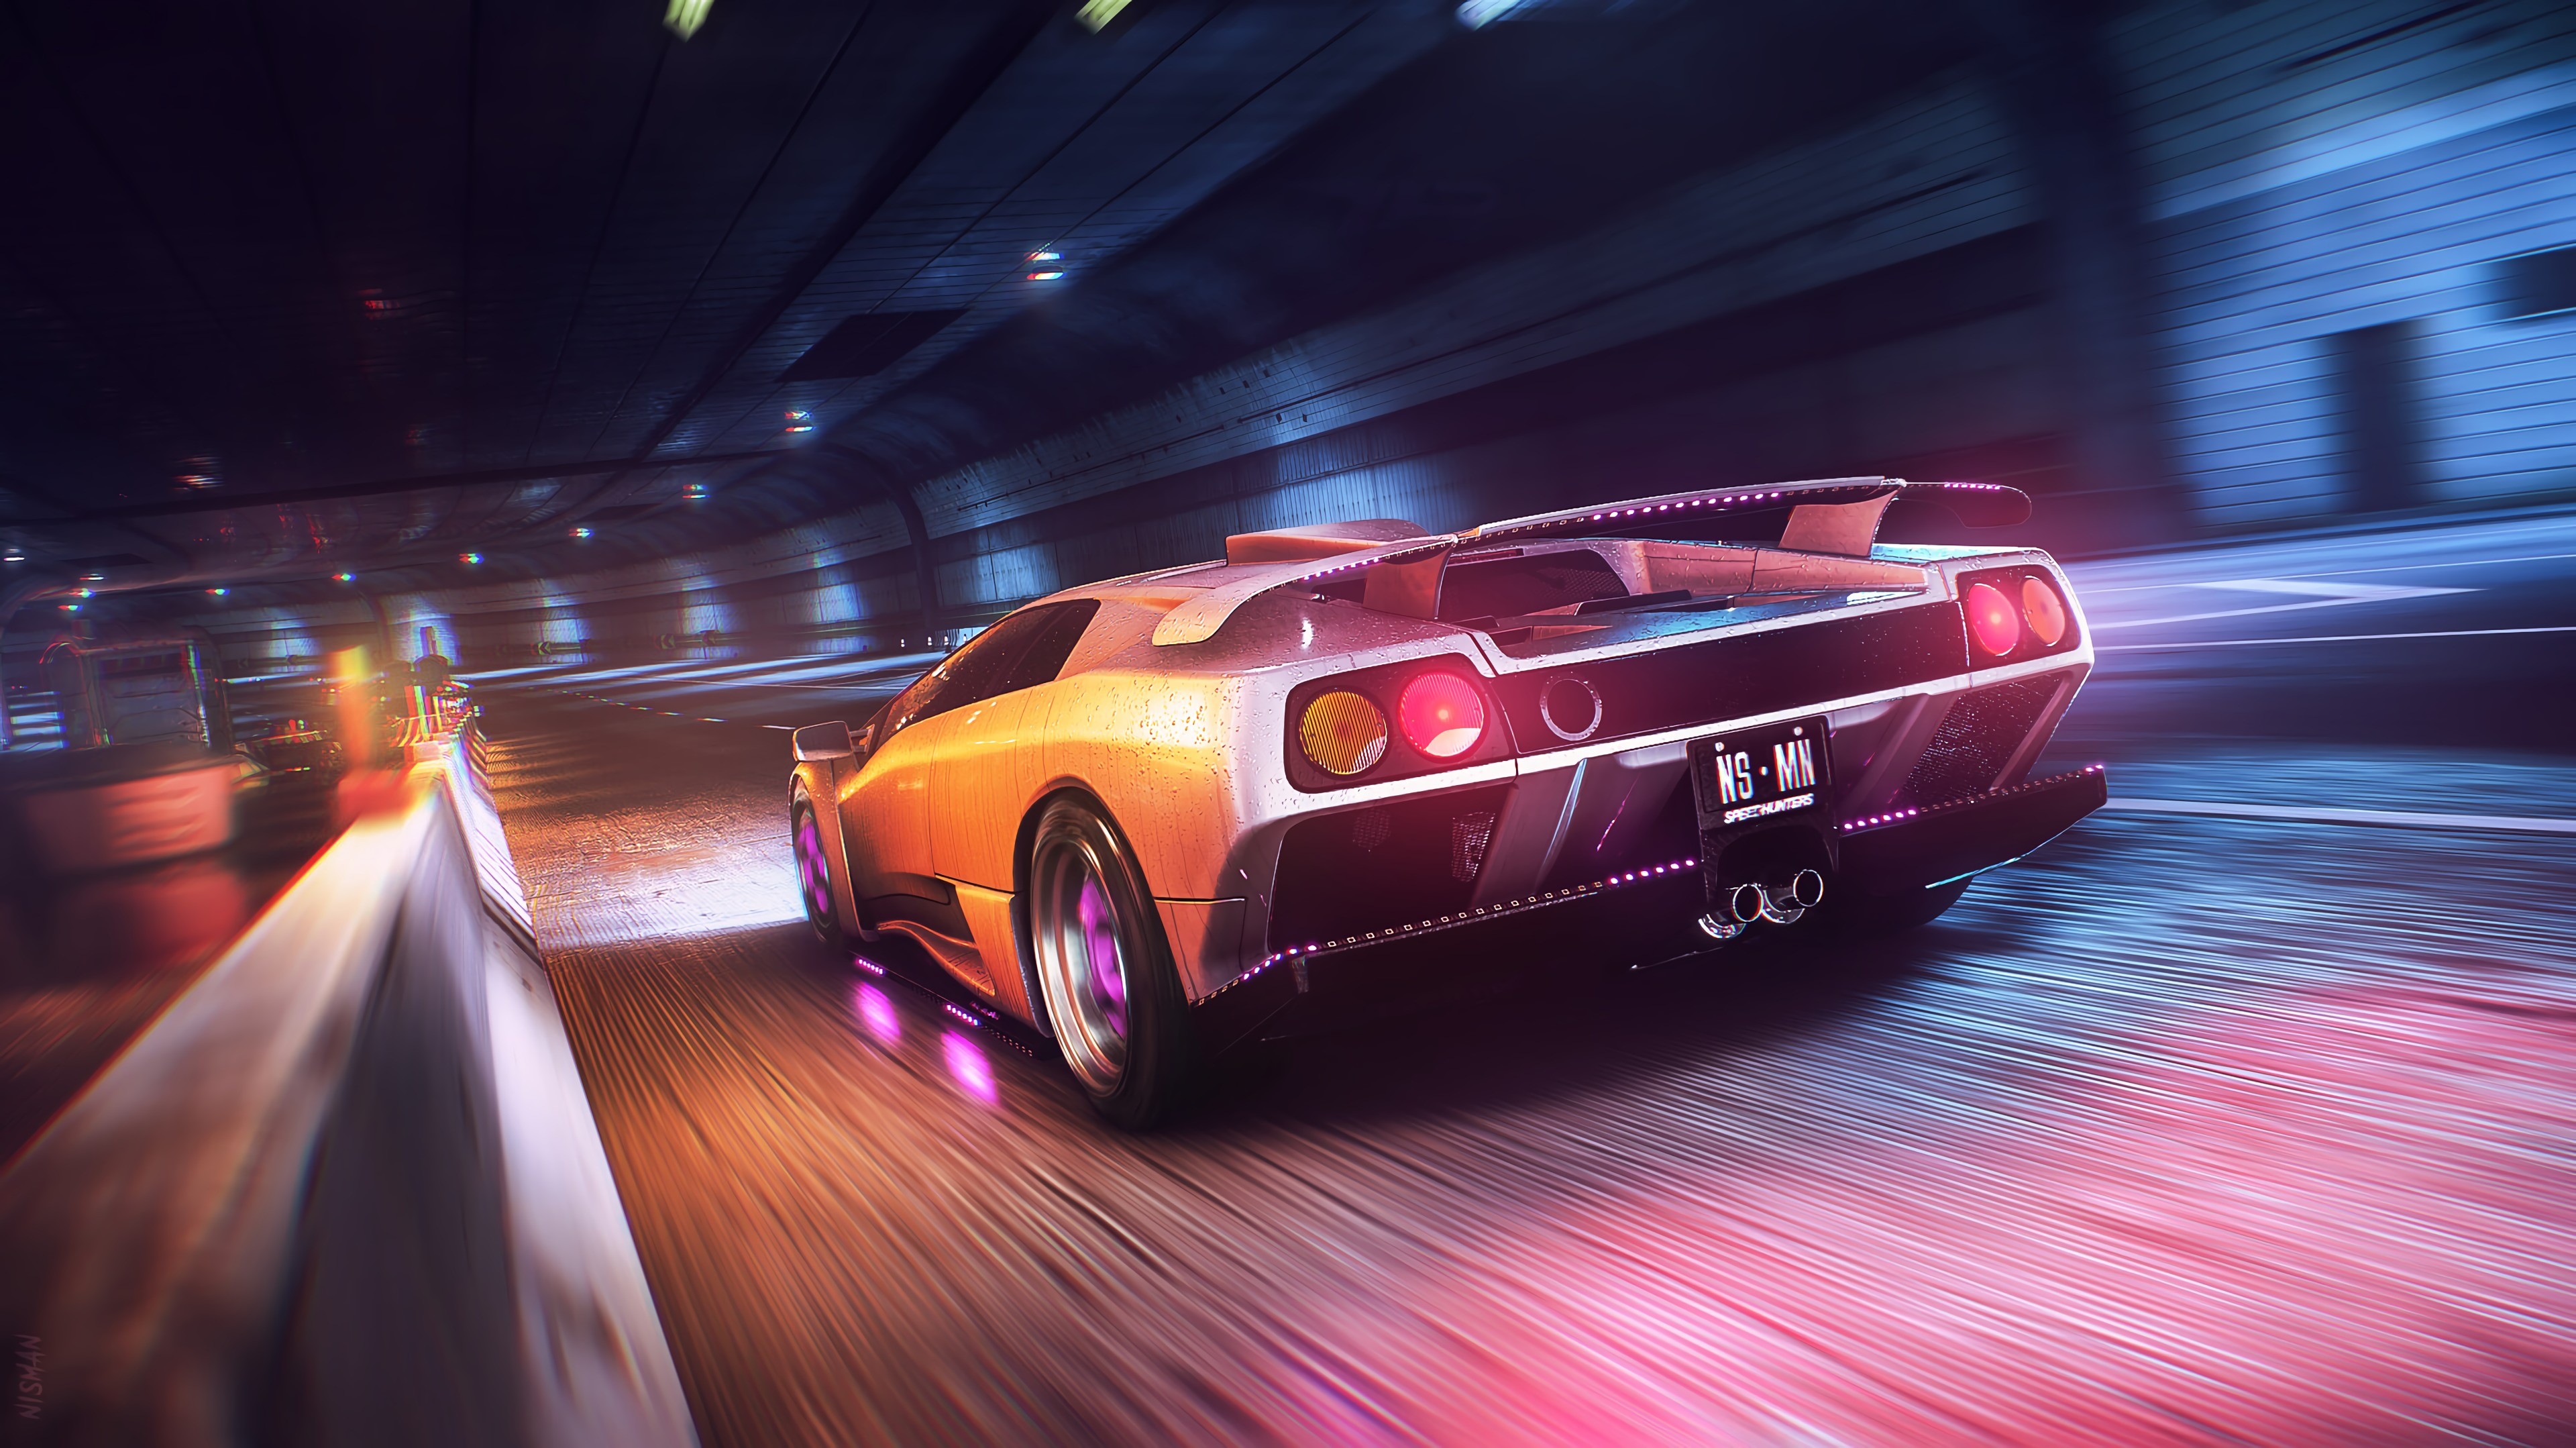 153637 Screensavers and Wallpapers Wet for phone. Download Sports, Cars, Wet, Car, Machine, Sports Car, Speed, Tunnel pictures for free